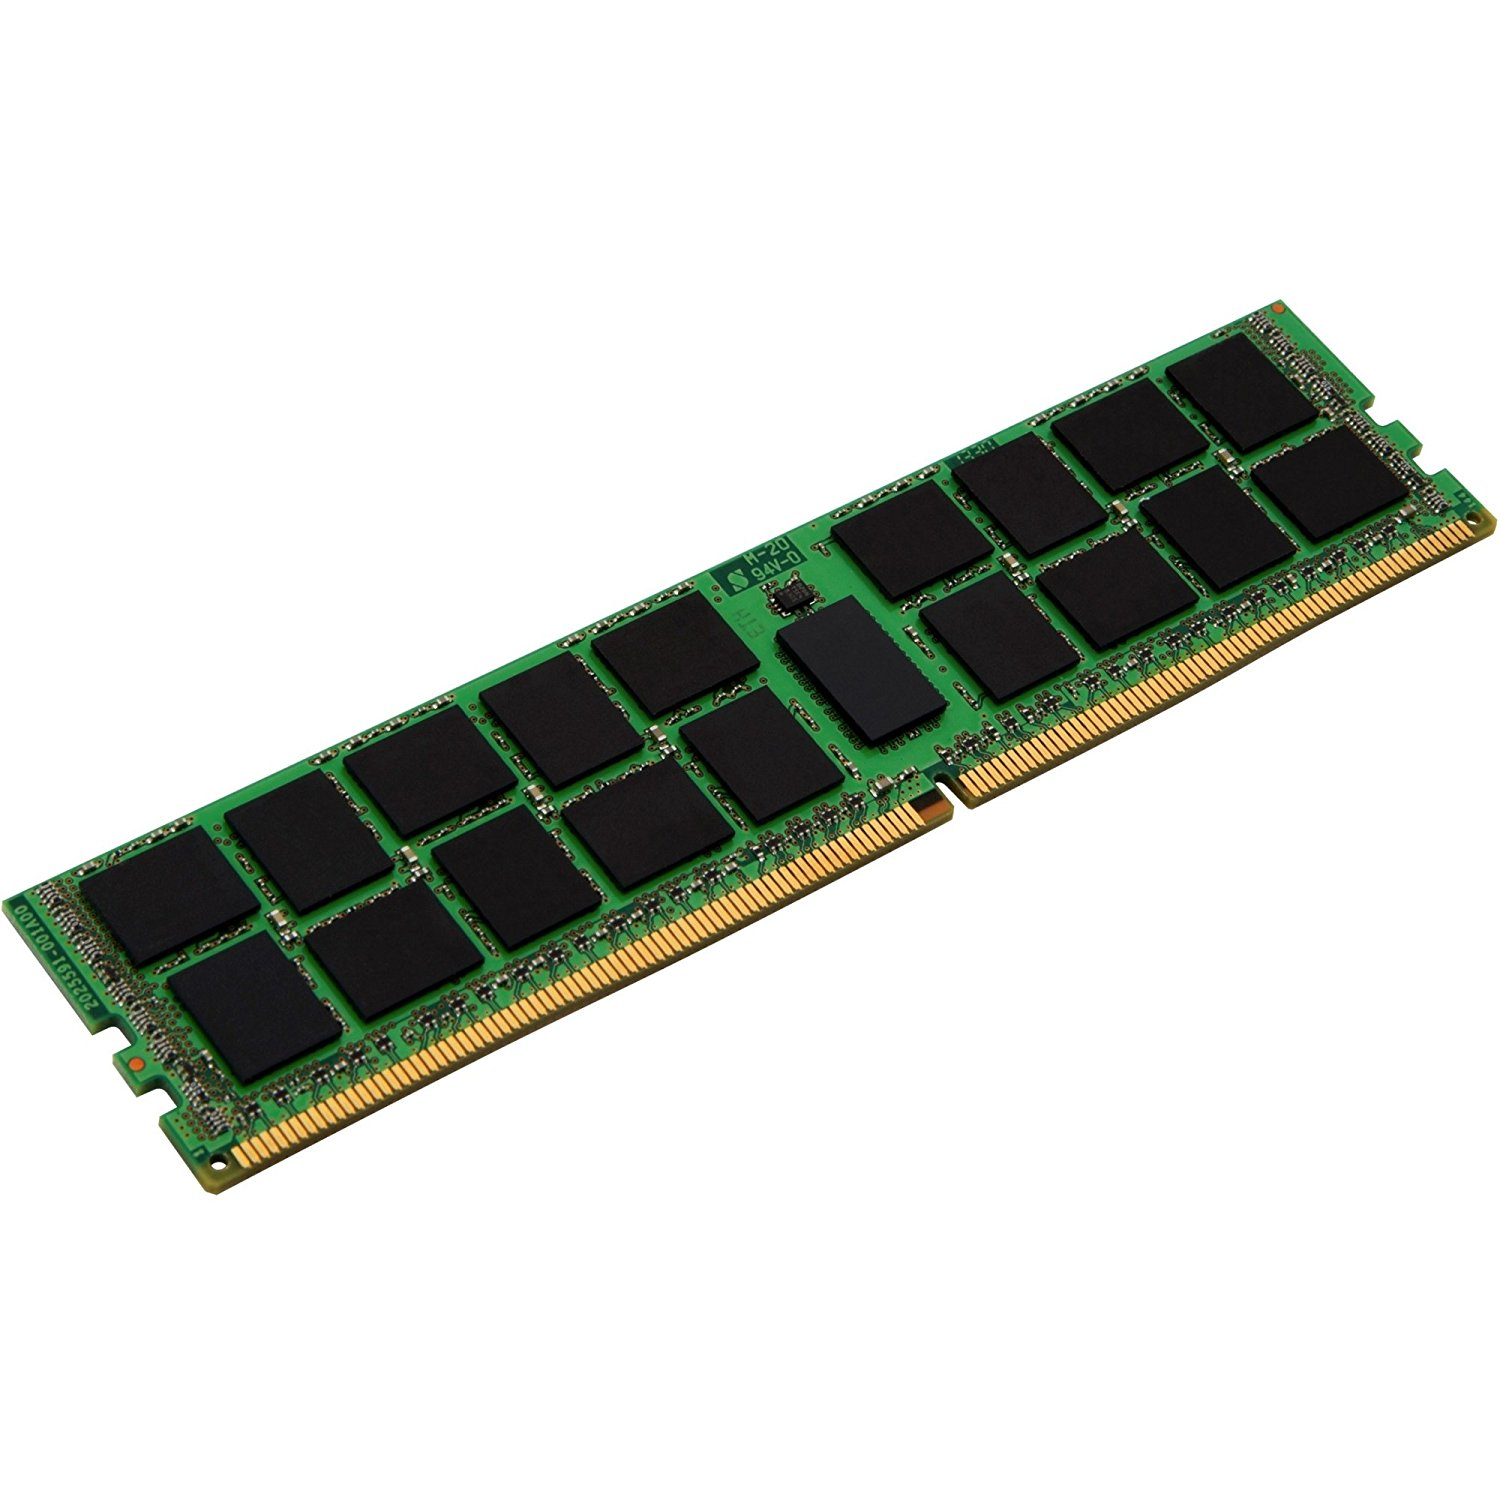 PC3-19200 DDR3-2400 Desktop Memory 2x8GB CORSAIR CMD32GX3M4A2400C10 16GB